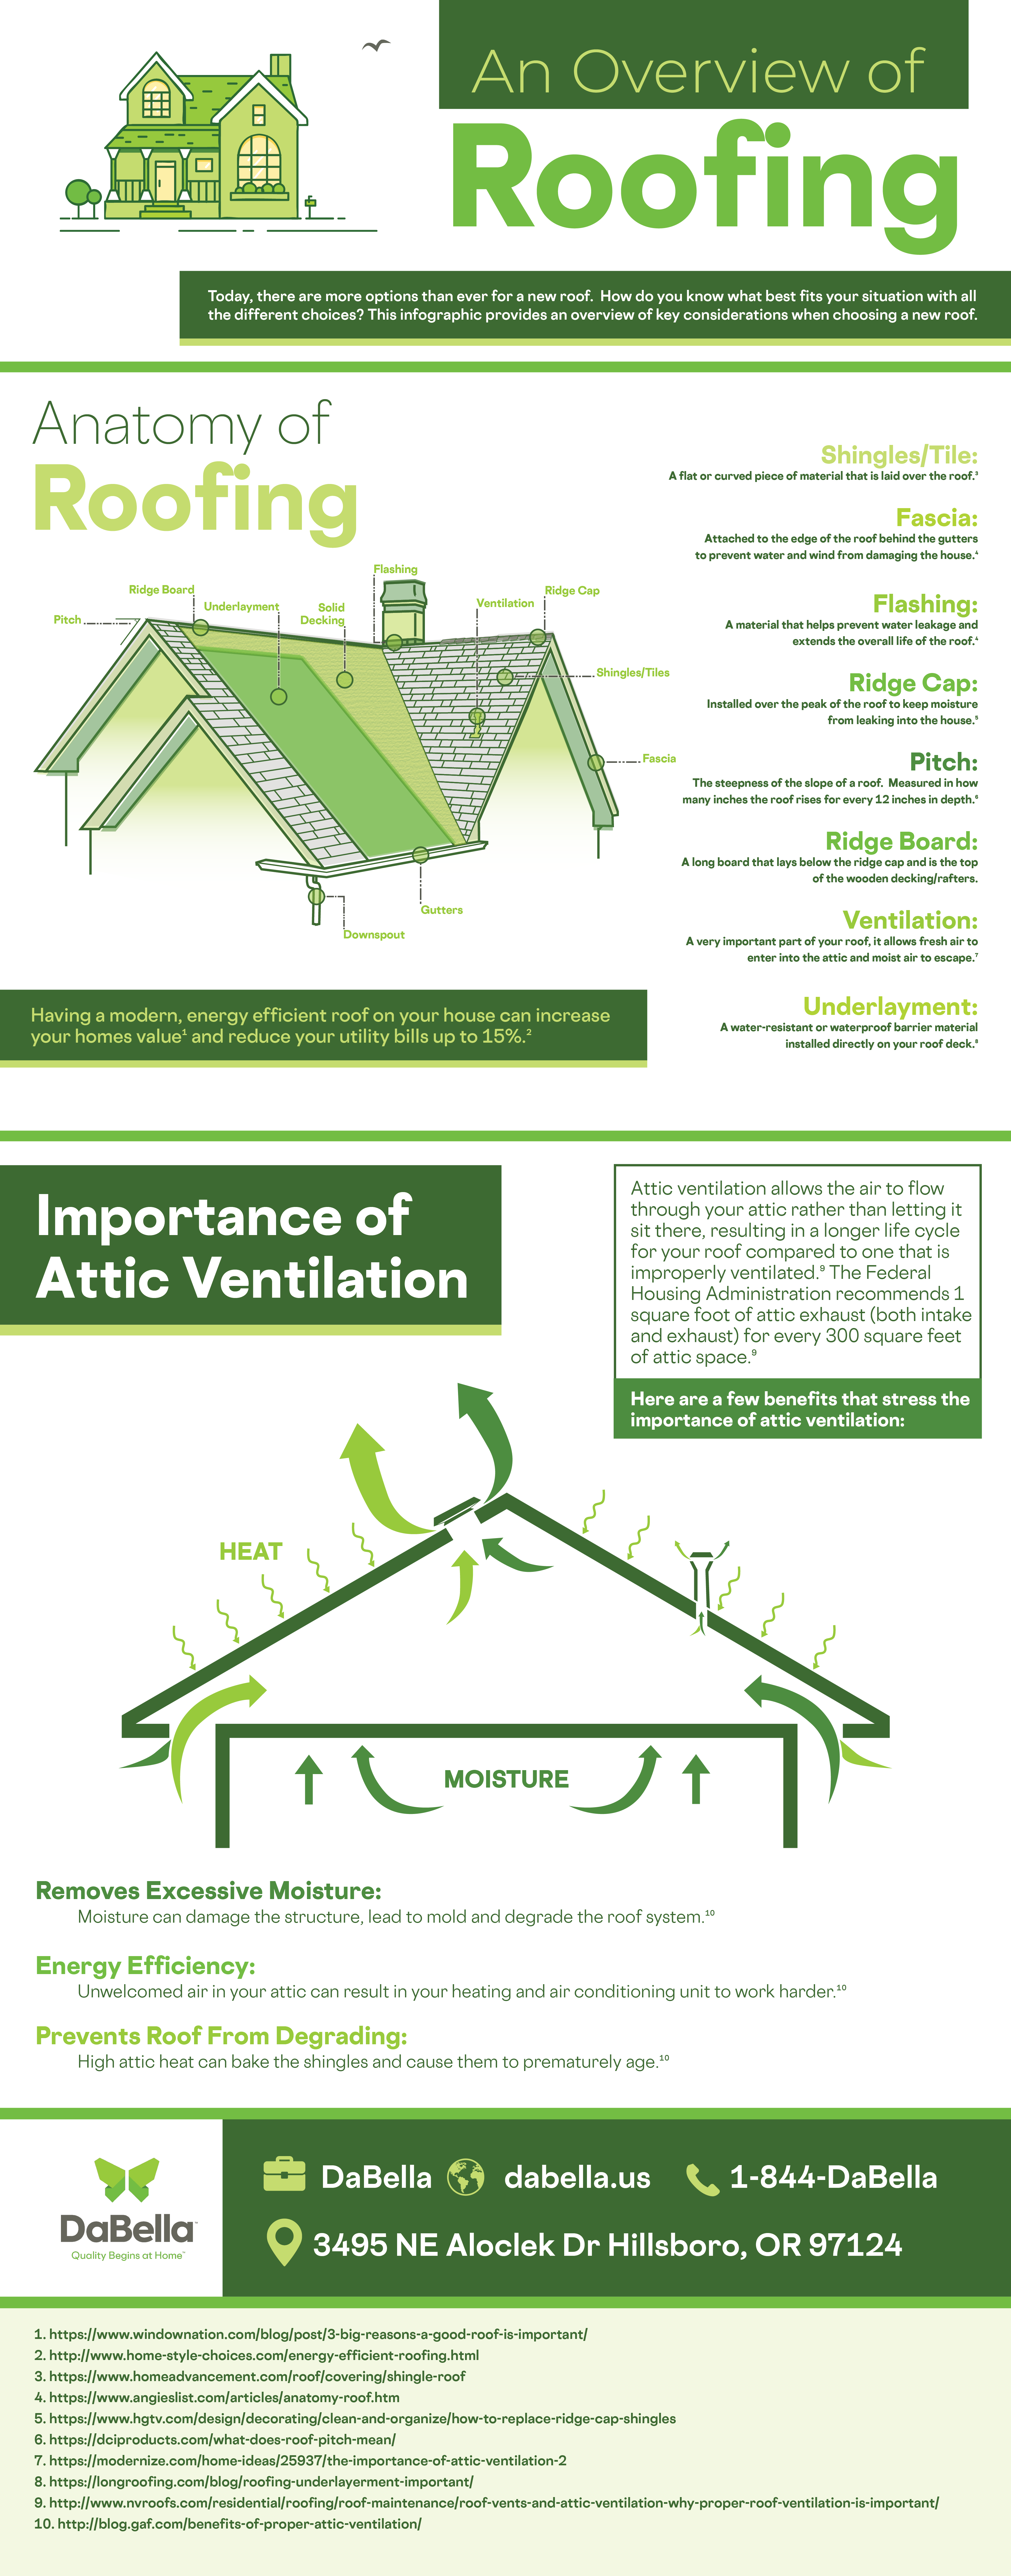 Roofing An Overview Infographic Roofing How To Install Gutters Attic Ventilation